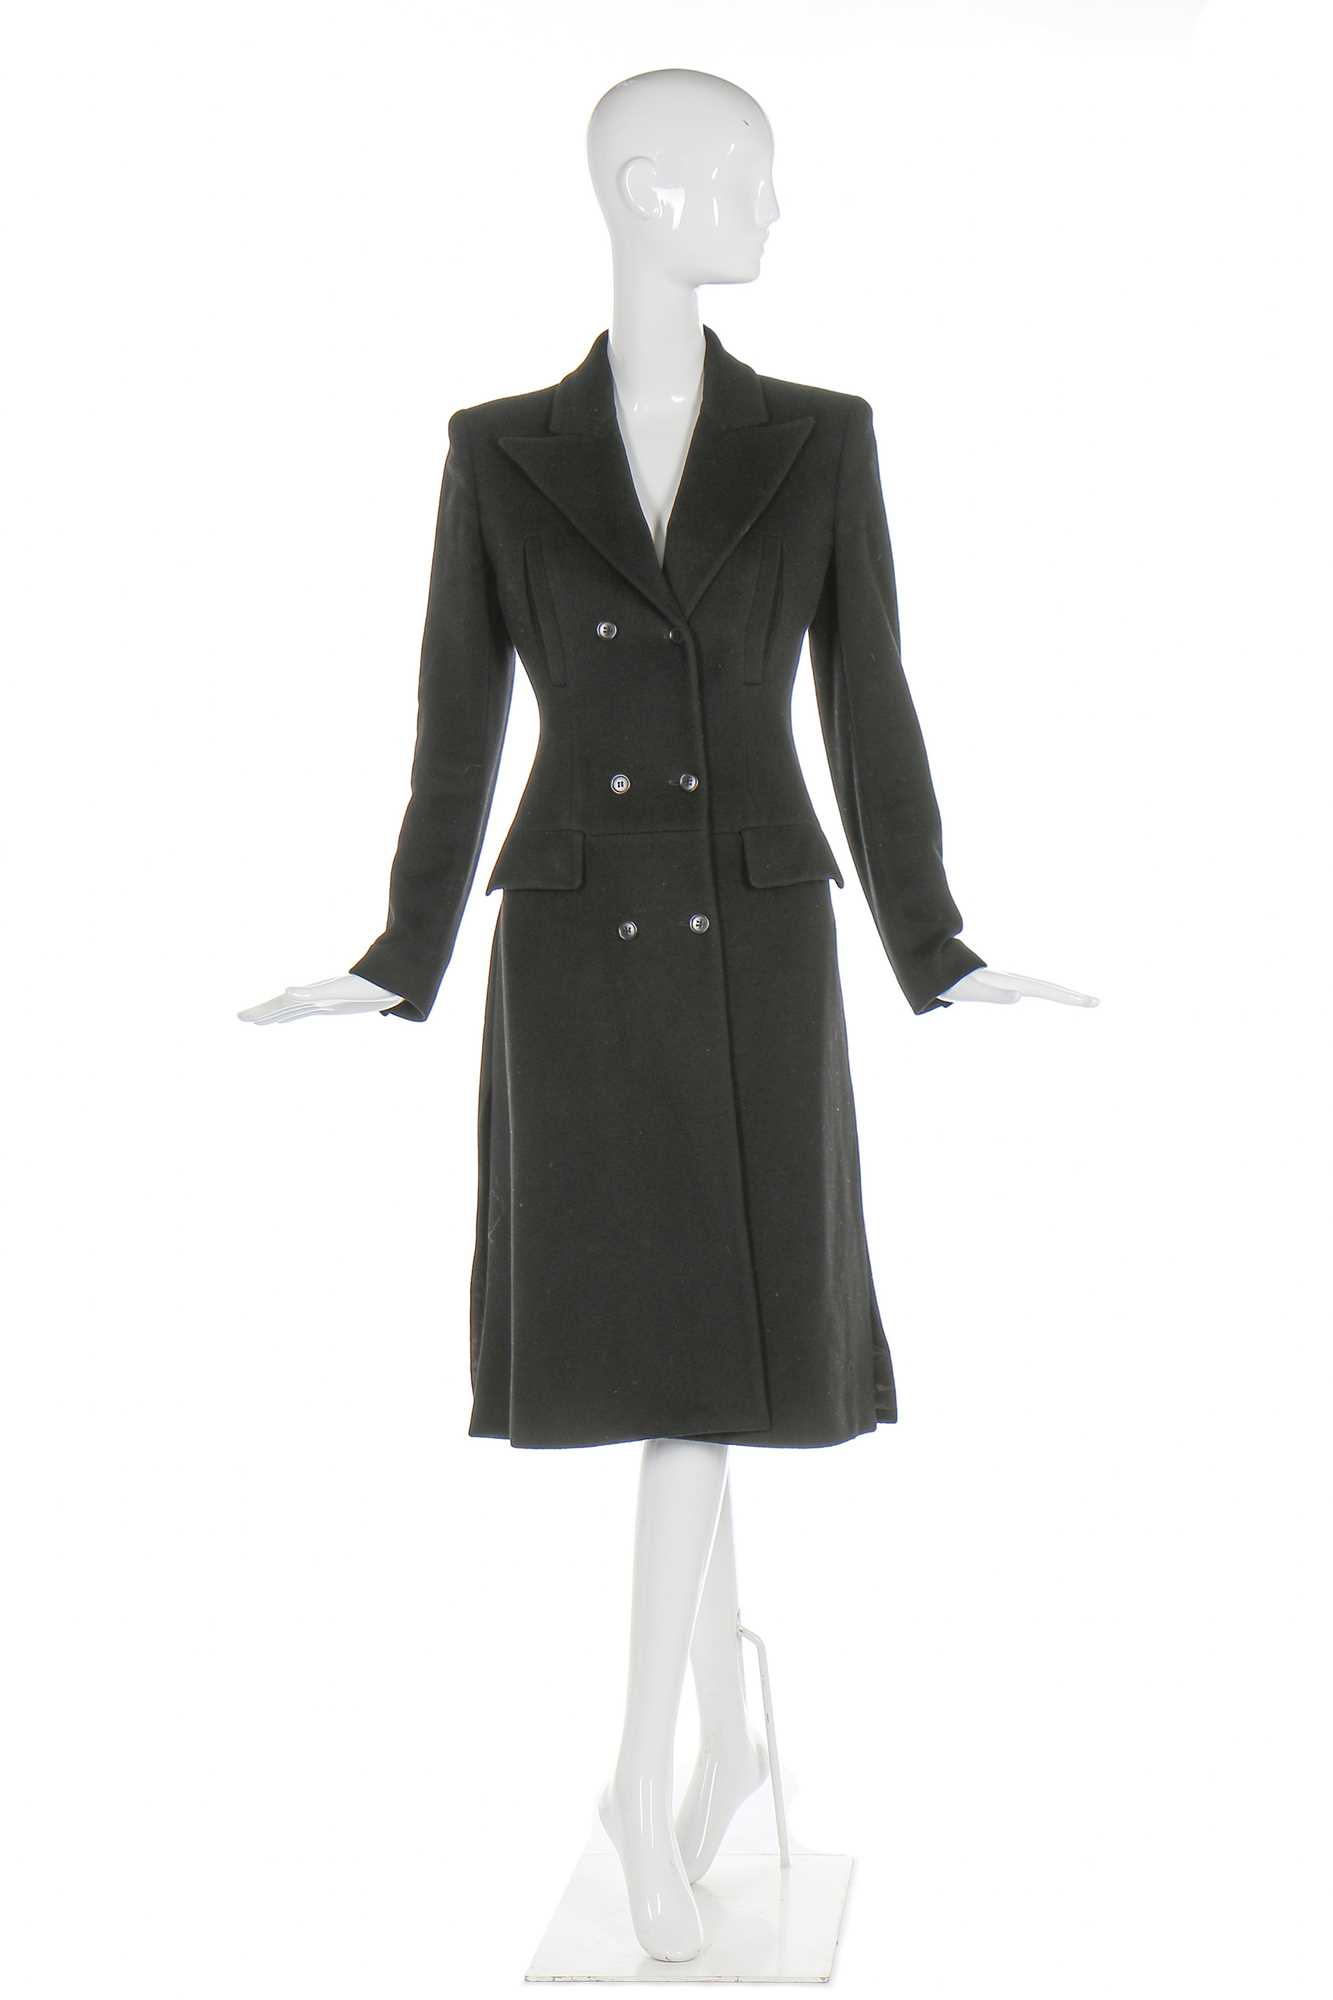 Lot 10-Alexander McQueen black cashmere coat, probably 'It's a Jungle Out There' Autumn-Winter 1997-98